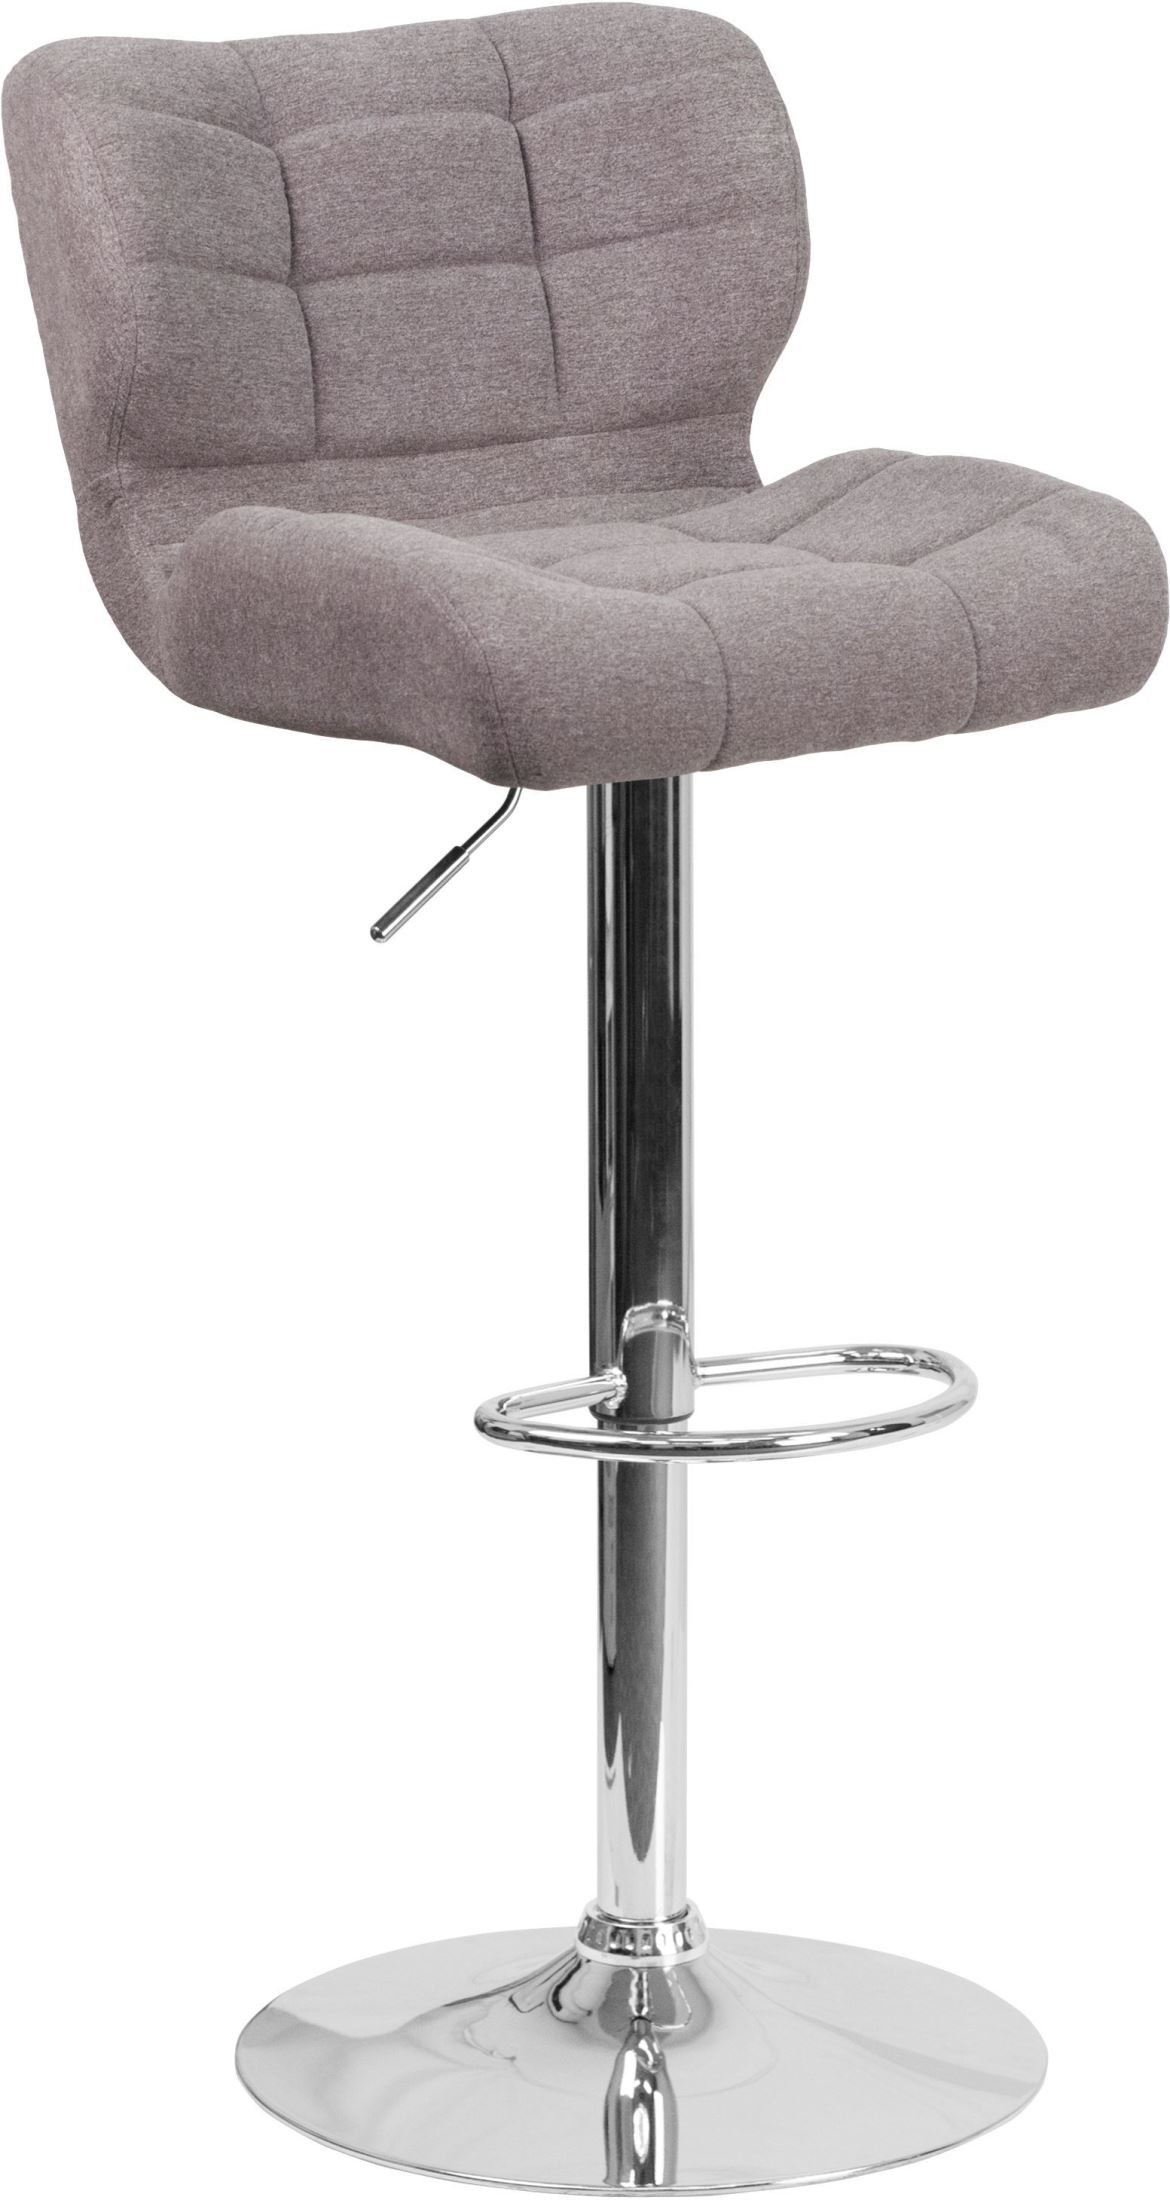 Contemporary Tufted Gray Fabric Adjustable Height Bar